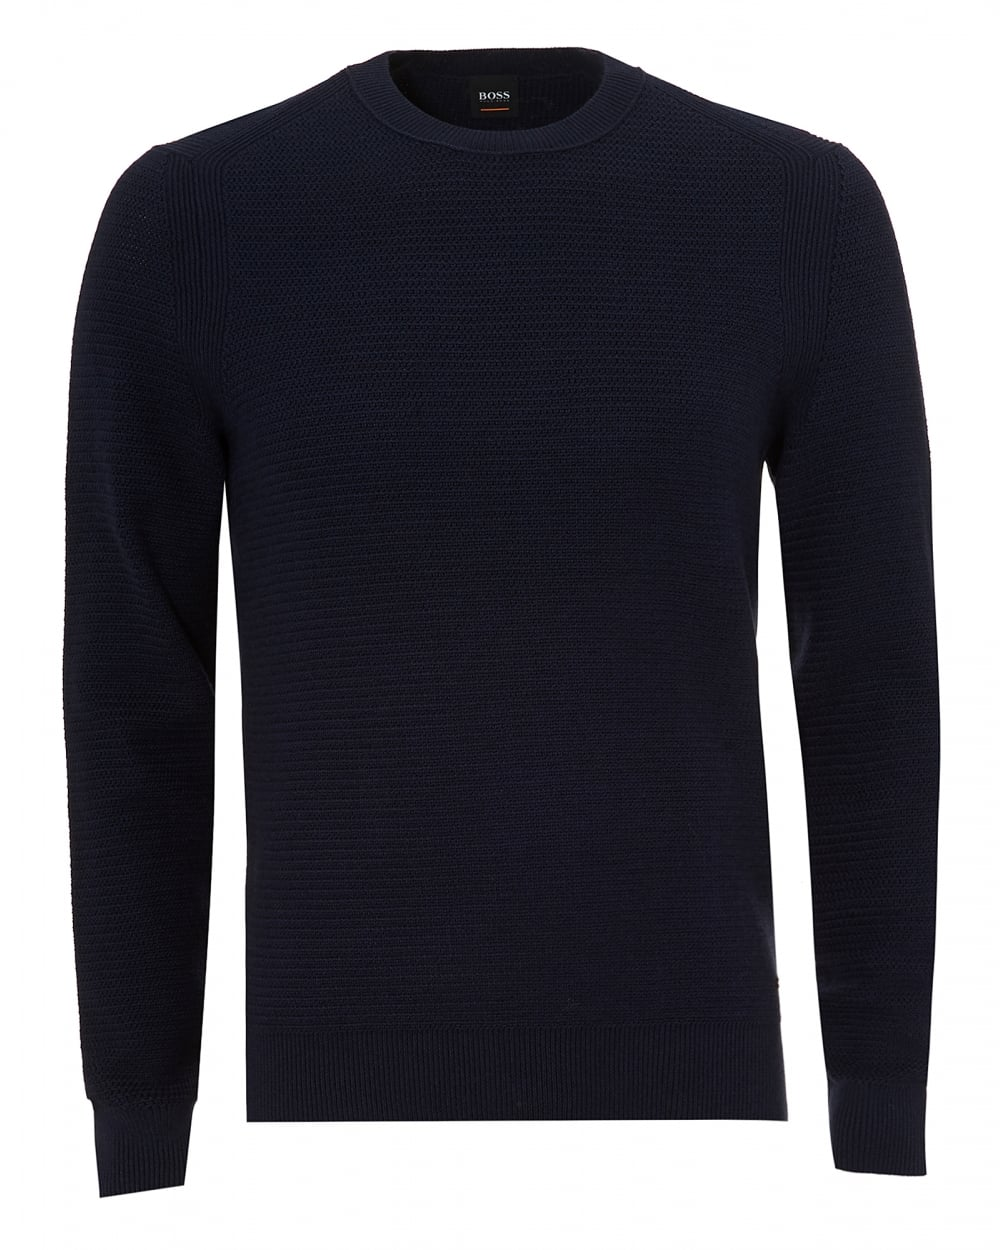 BOSS Casual Mens Kelvor Jumper Boss Orange by Hugo Boss Outlet Low Shipping Recommend Latest Collections Cheap Online Low Price Fee Shipping Cheap Price Excellent jH5JOelEu